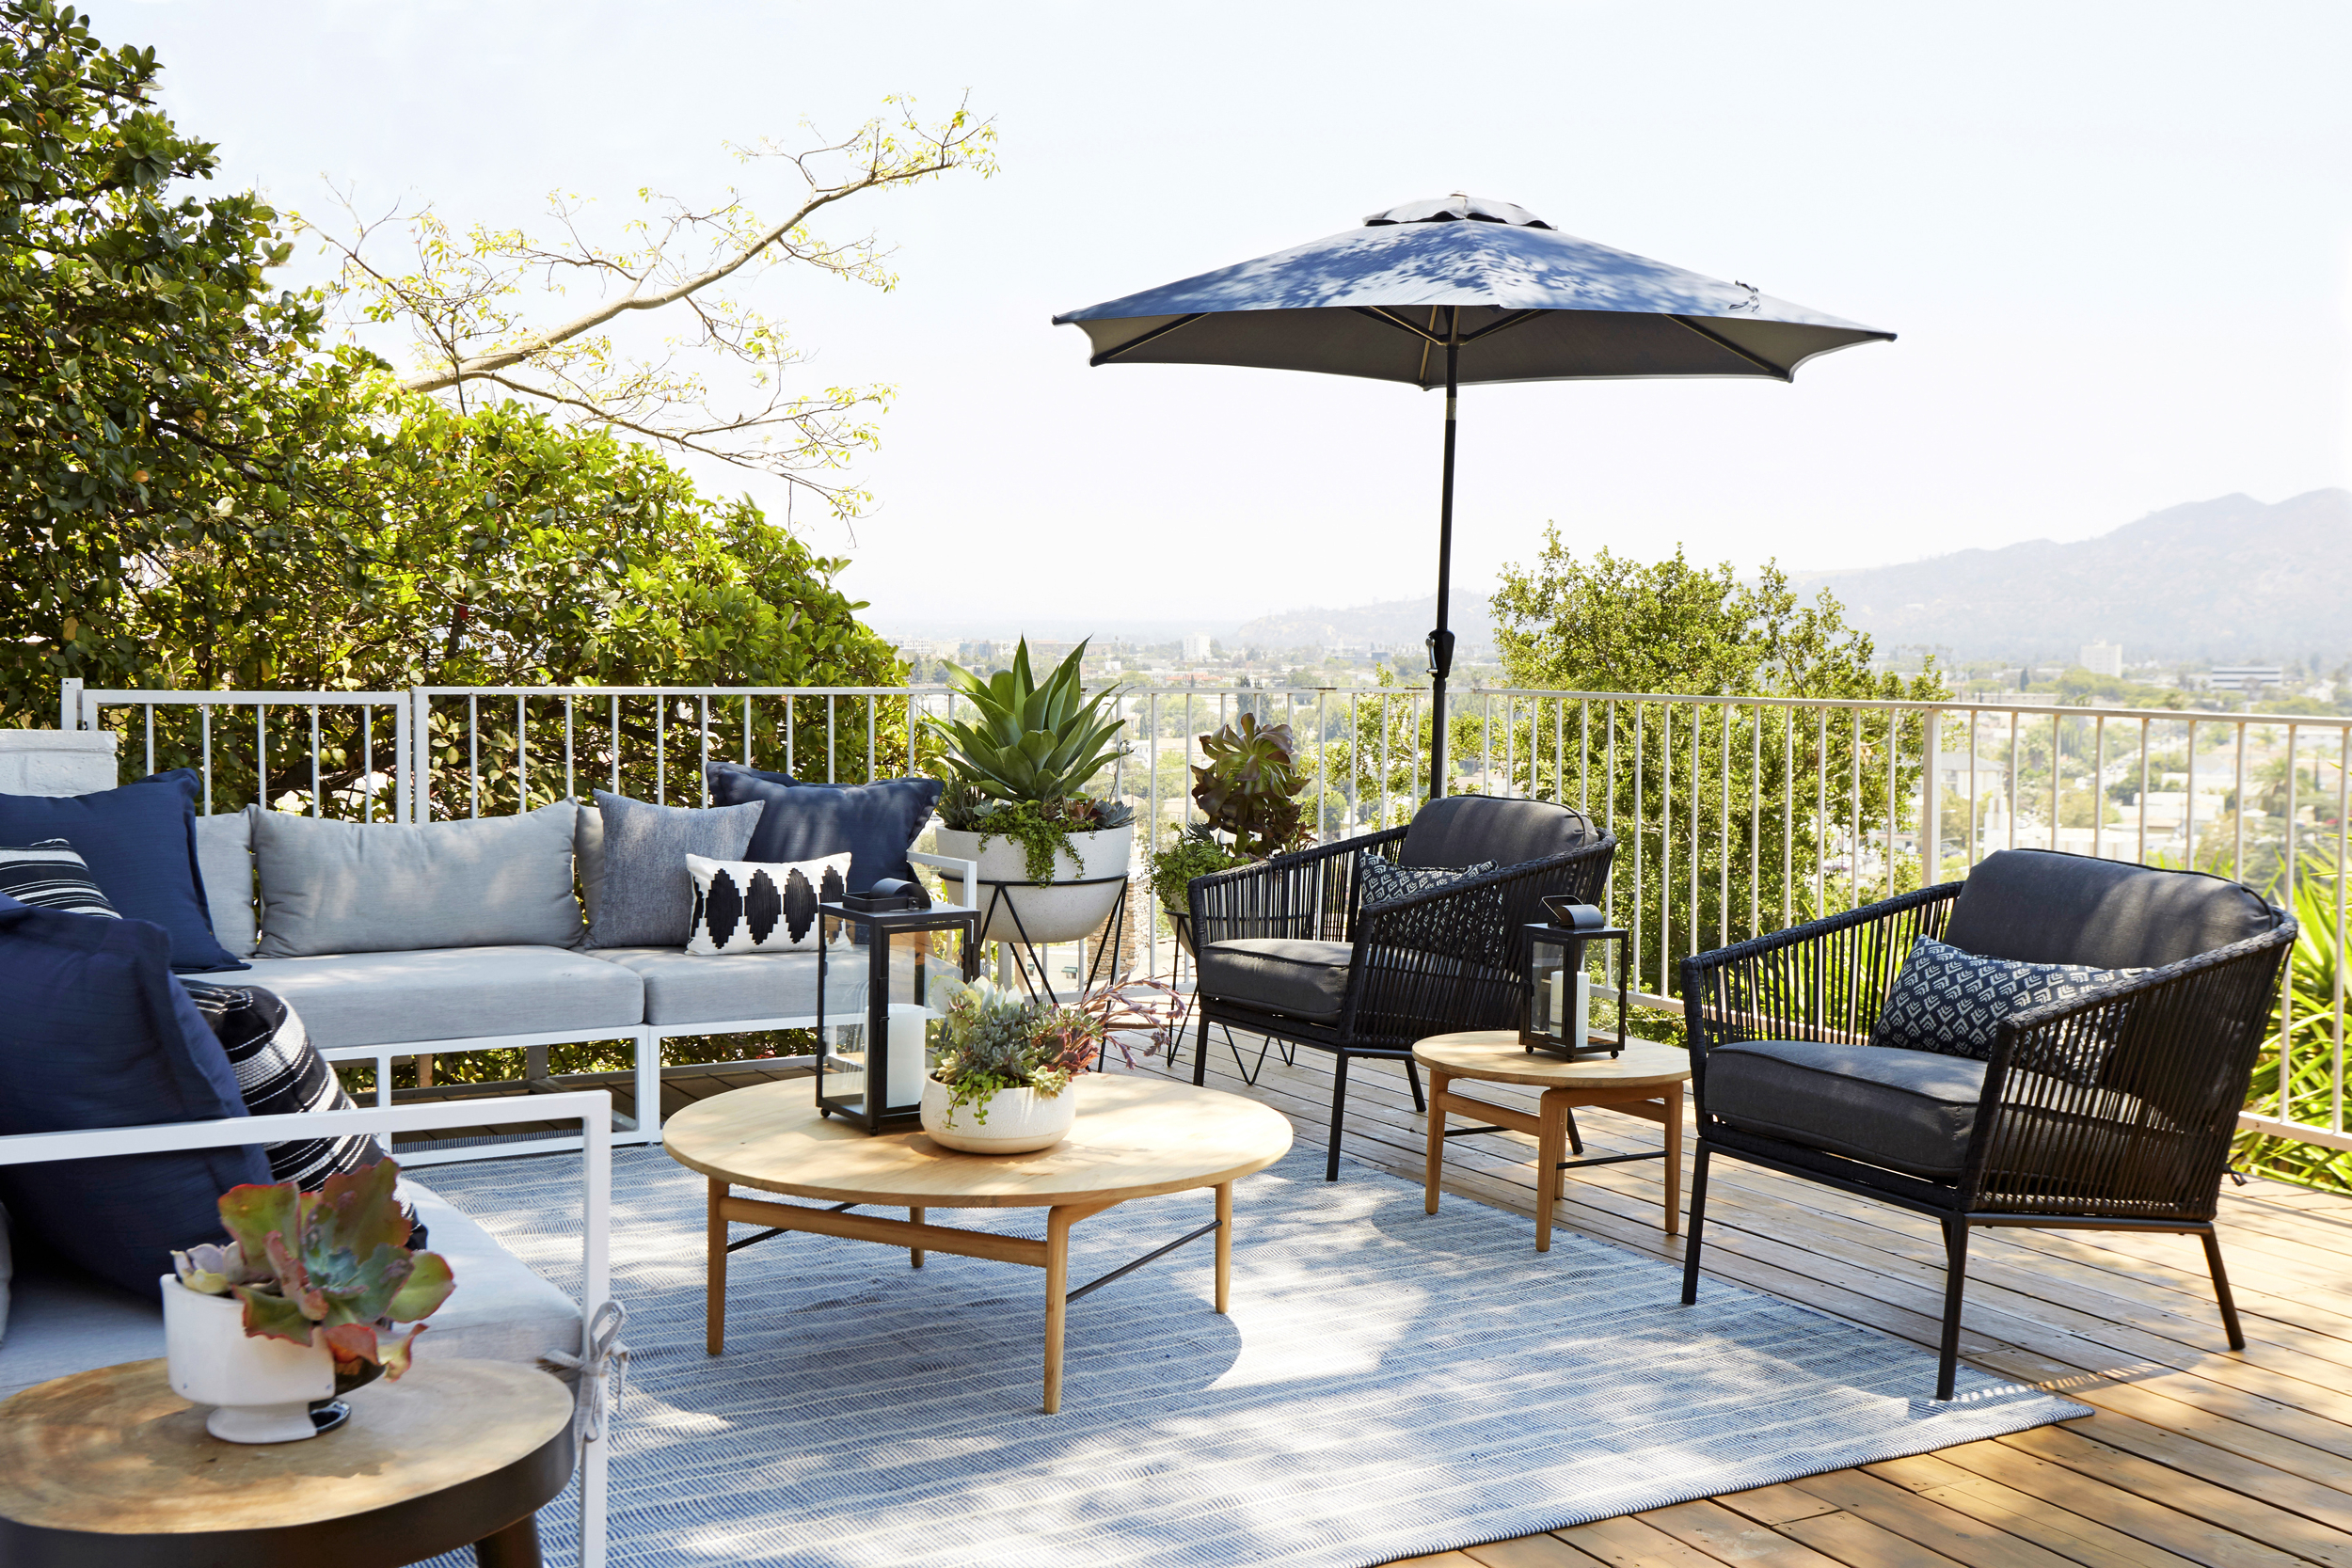 Outdoor Living Pacifica Piece Lounge Sets Regarding Well Liked Outdoor Lounge Furniture Roundup – Emily Henderson (View 19 of 25)